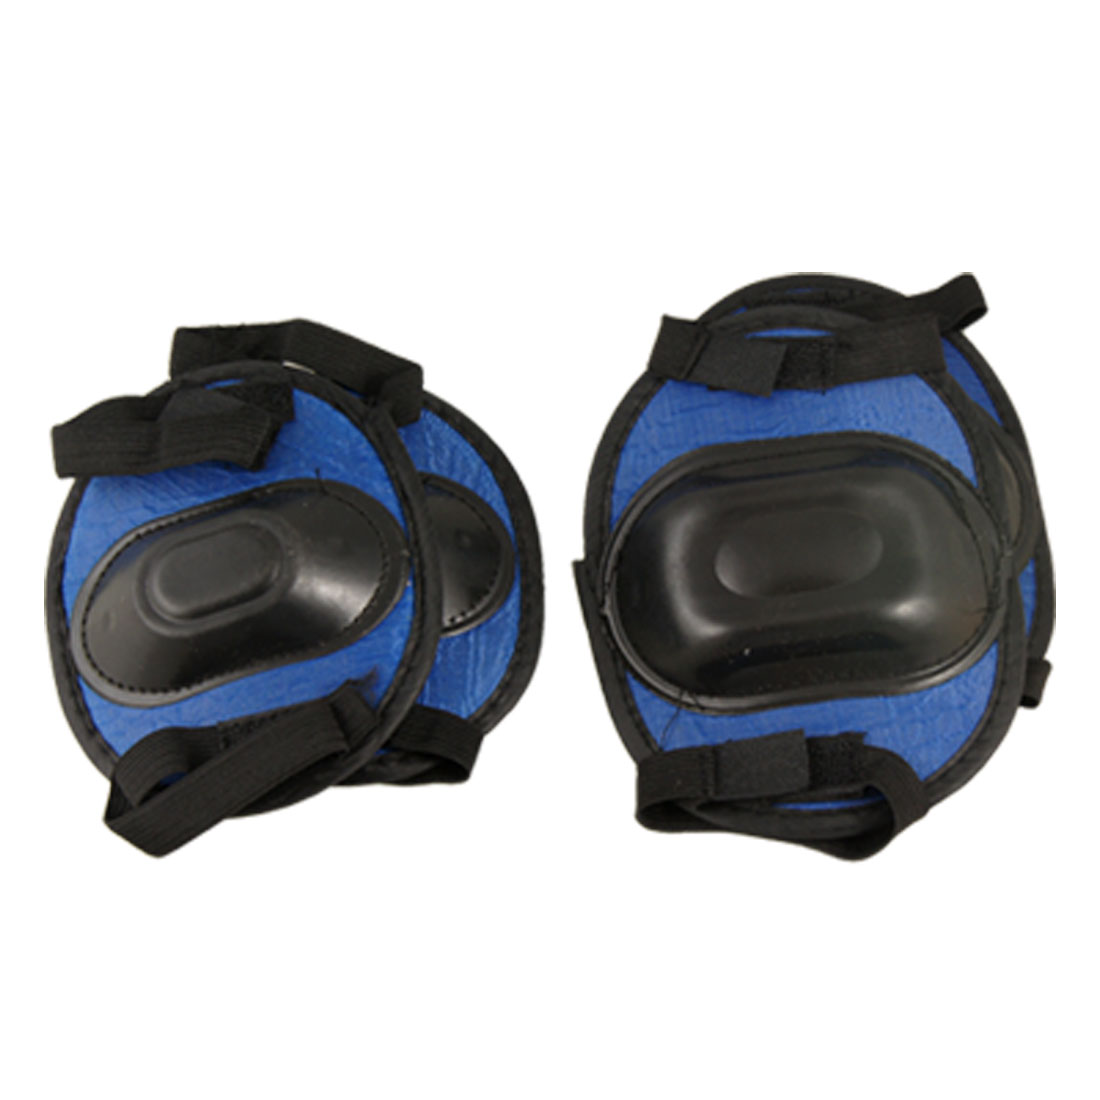 Roller Skating Elbow Knee Pad Protector Blue Black for Children